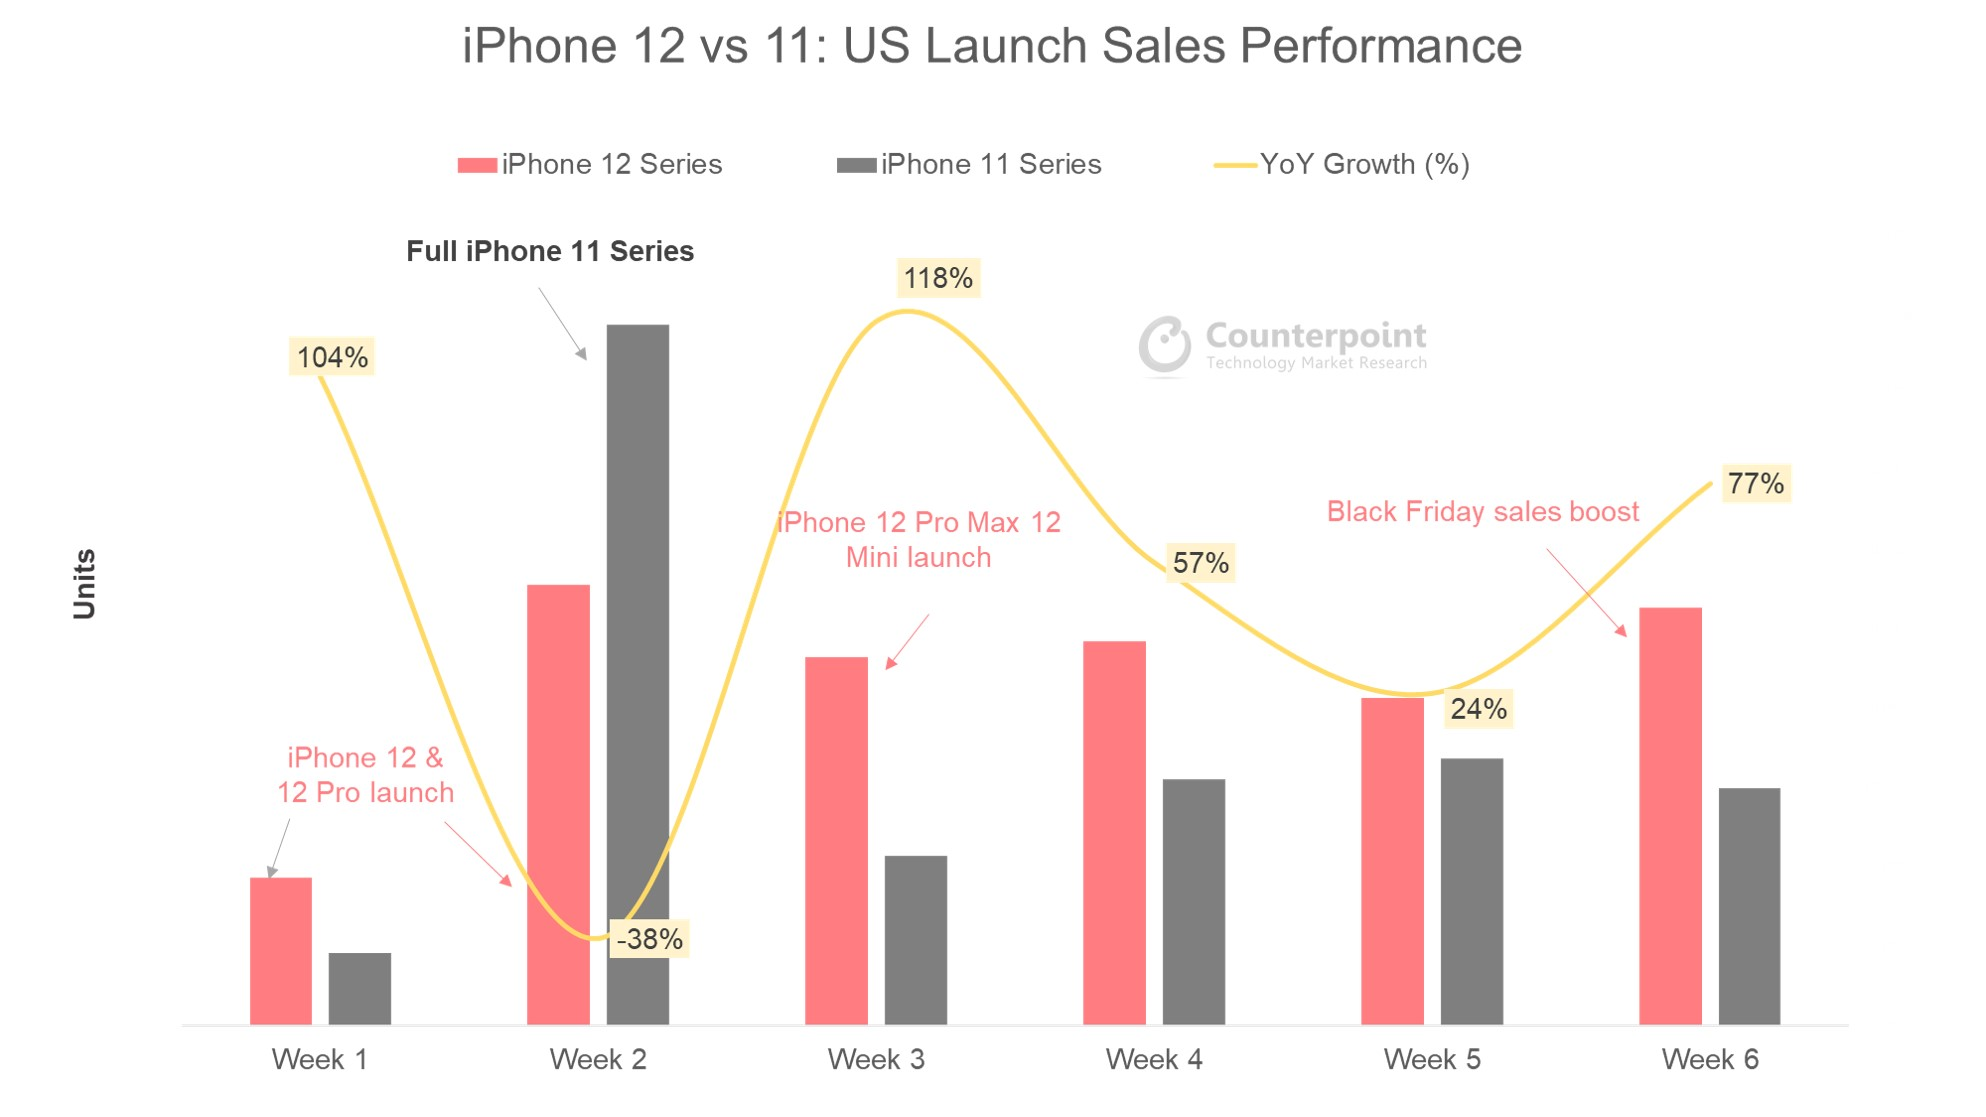 iPhone sales - iPhone 12 vs iPhone 11 - US launch sales performance